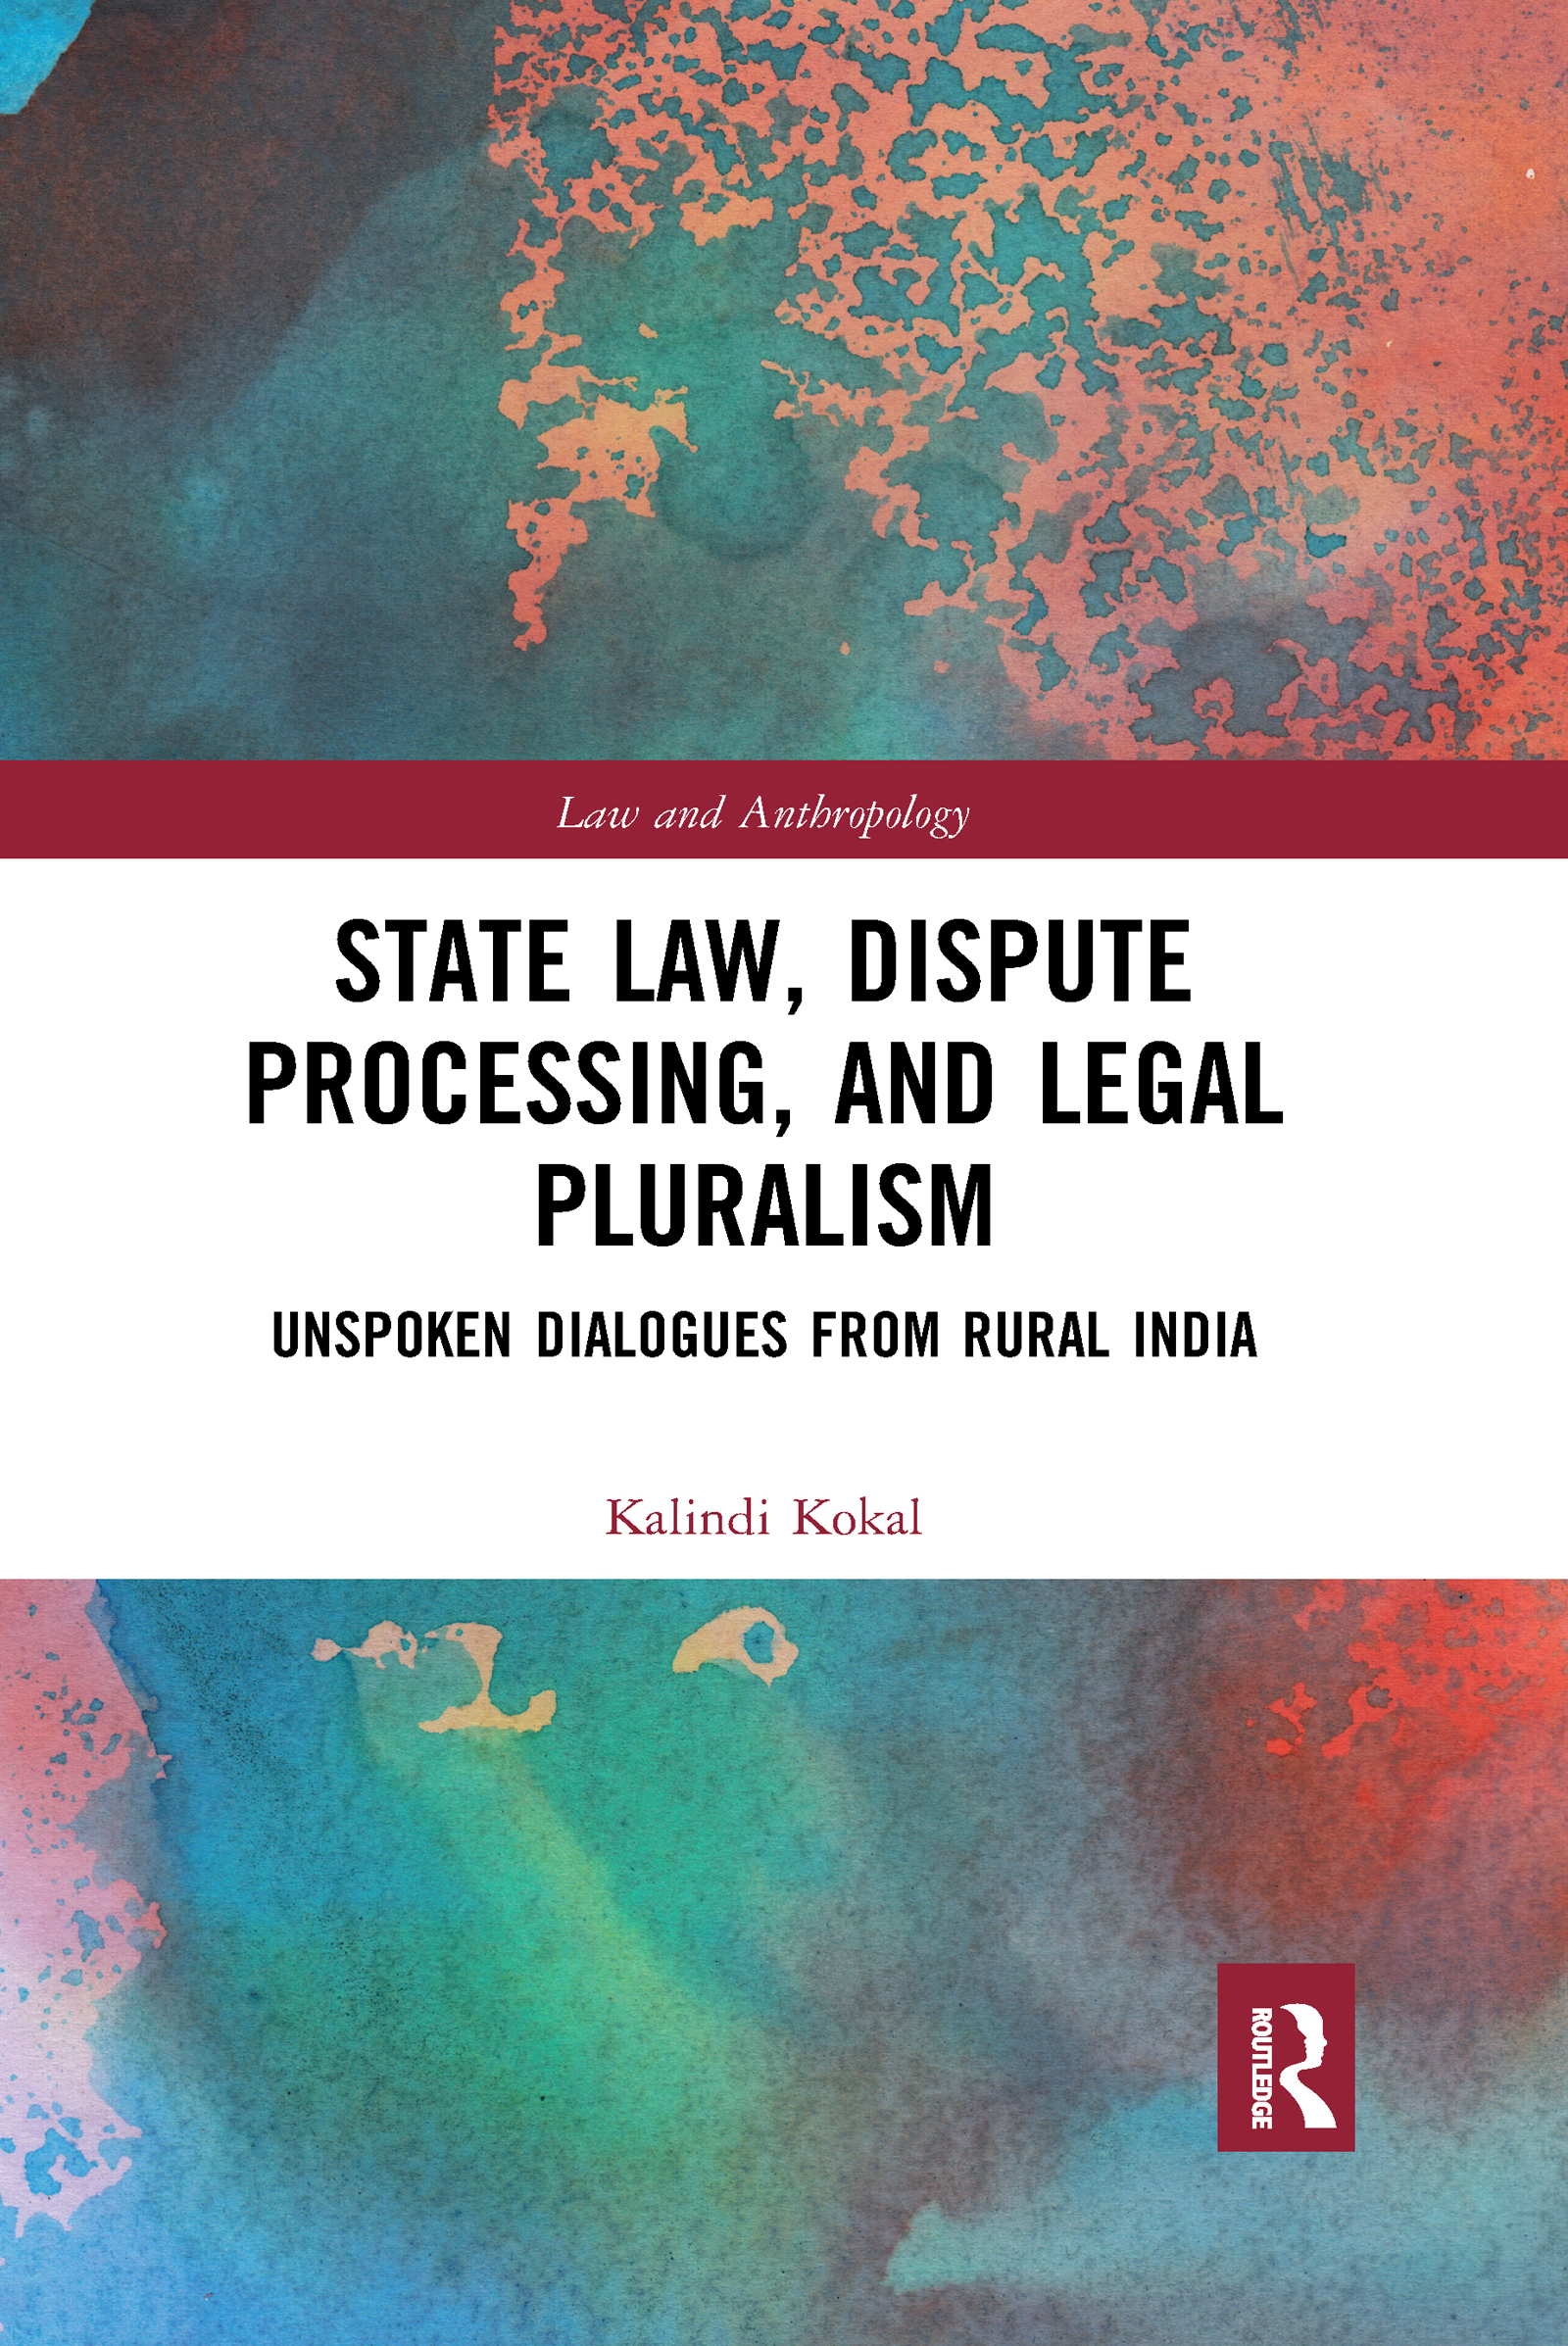 State Law, Dispute Processing And Legal Pluralism